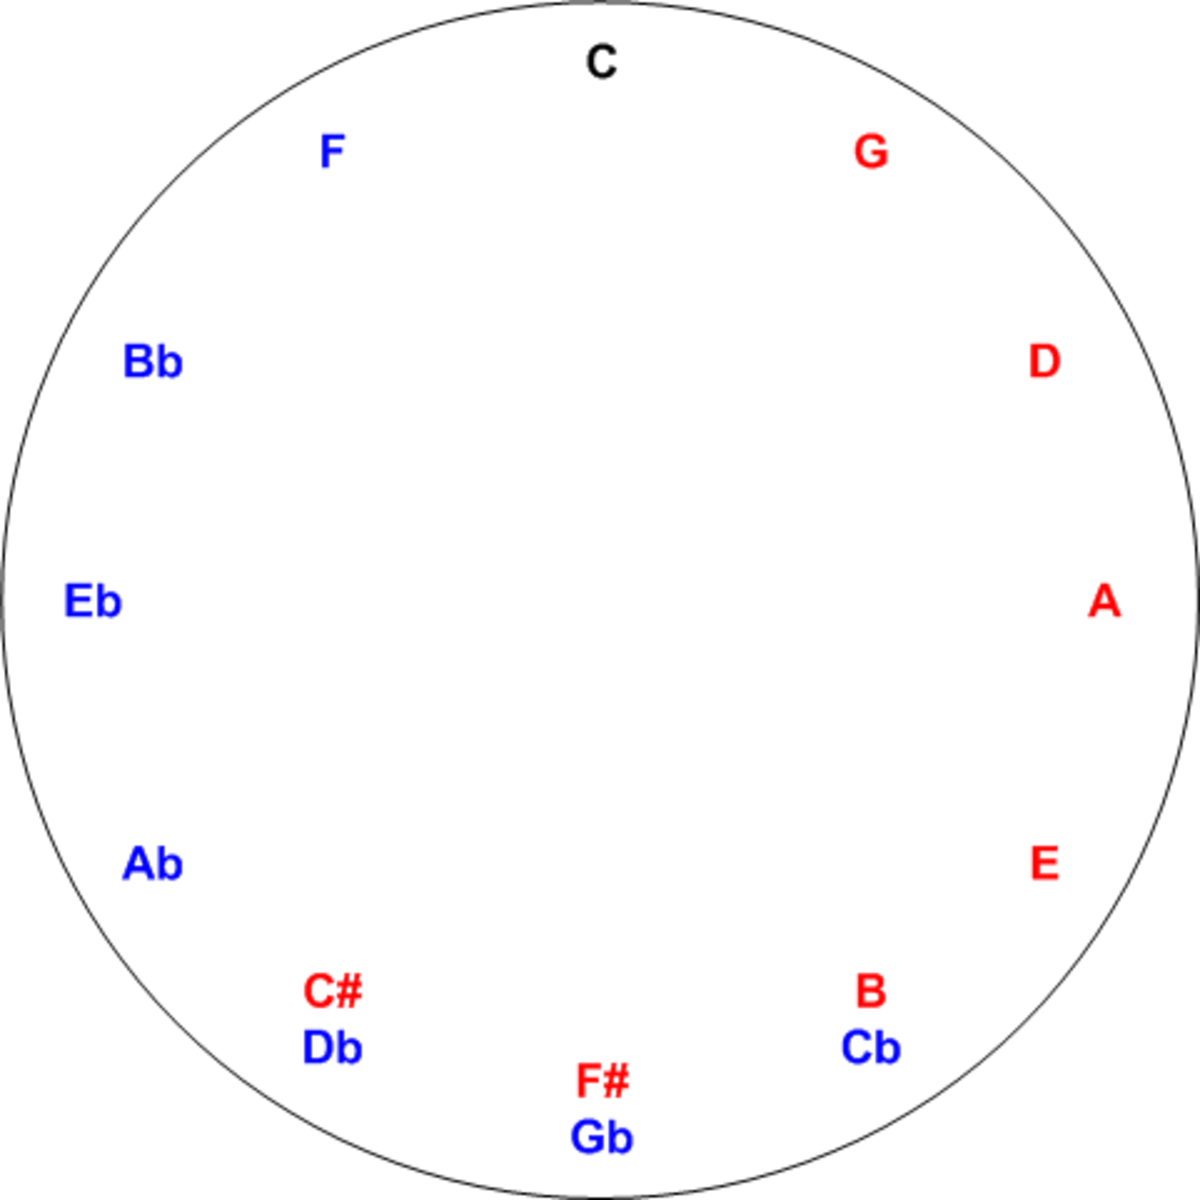 The Cycle of Fifths - a thing of beauty!